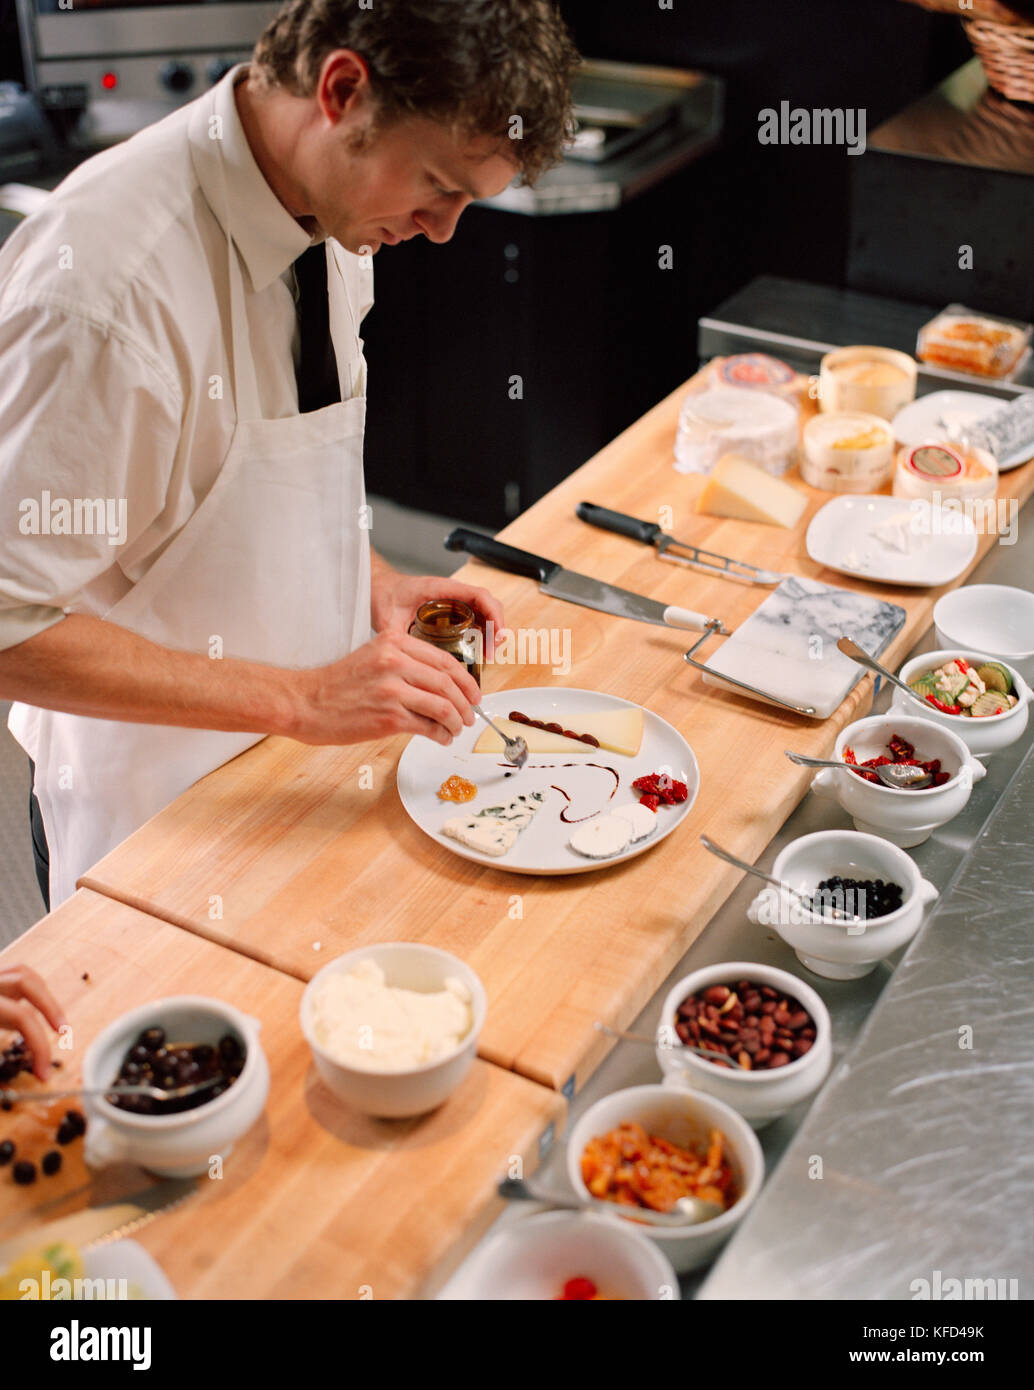 USA California Los Angeles chef decorating a cheese plate at the cheese bar of Comme Ca Restaurant.  sc 1 st  Alamy & USA California Los Angeles chef decorating a cheese plate at the ...